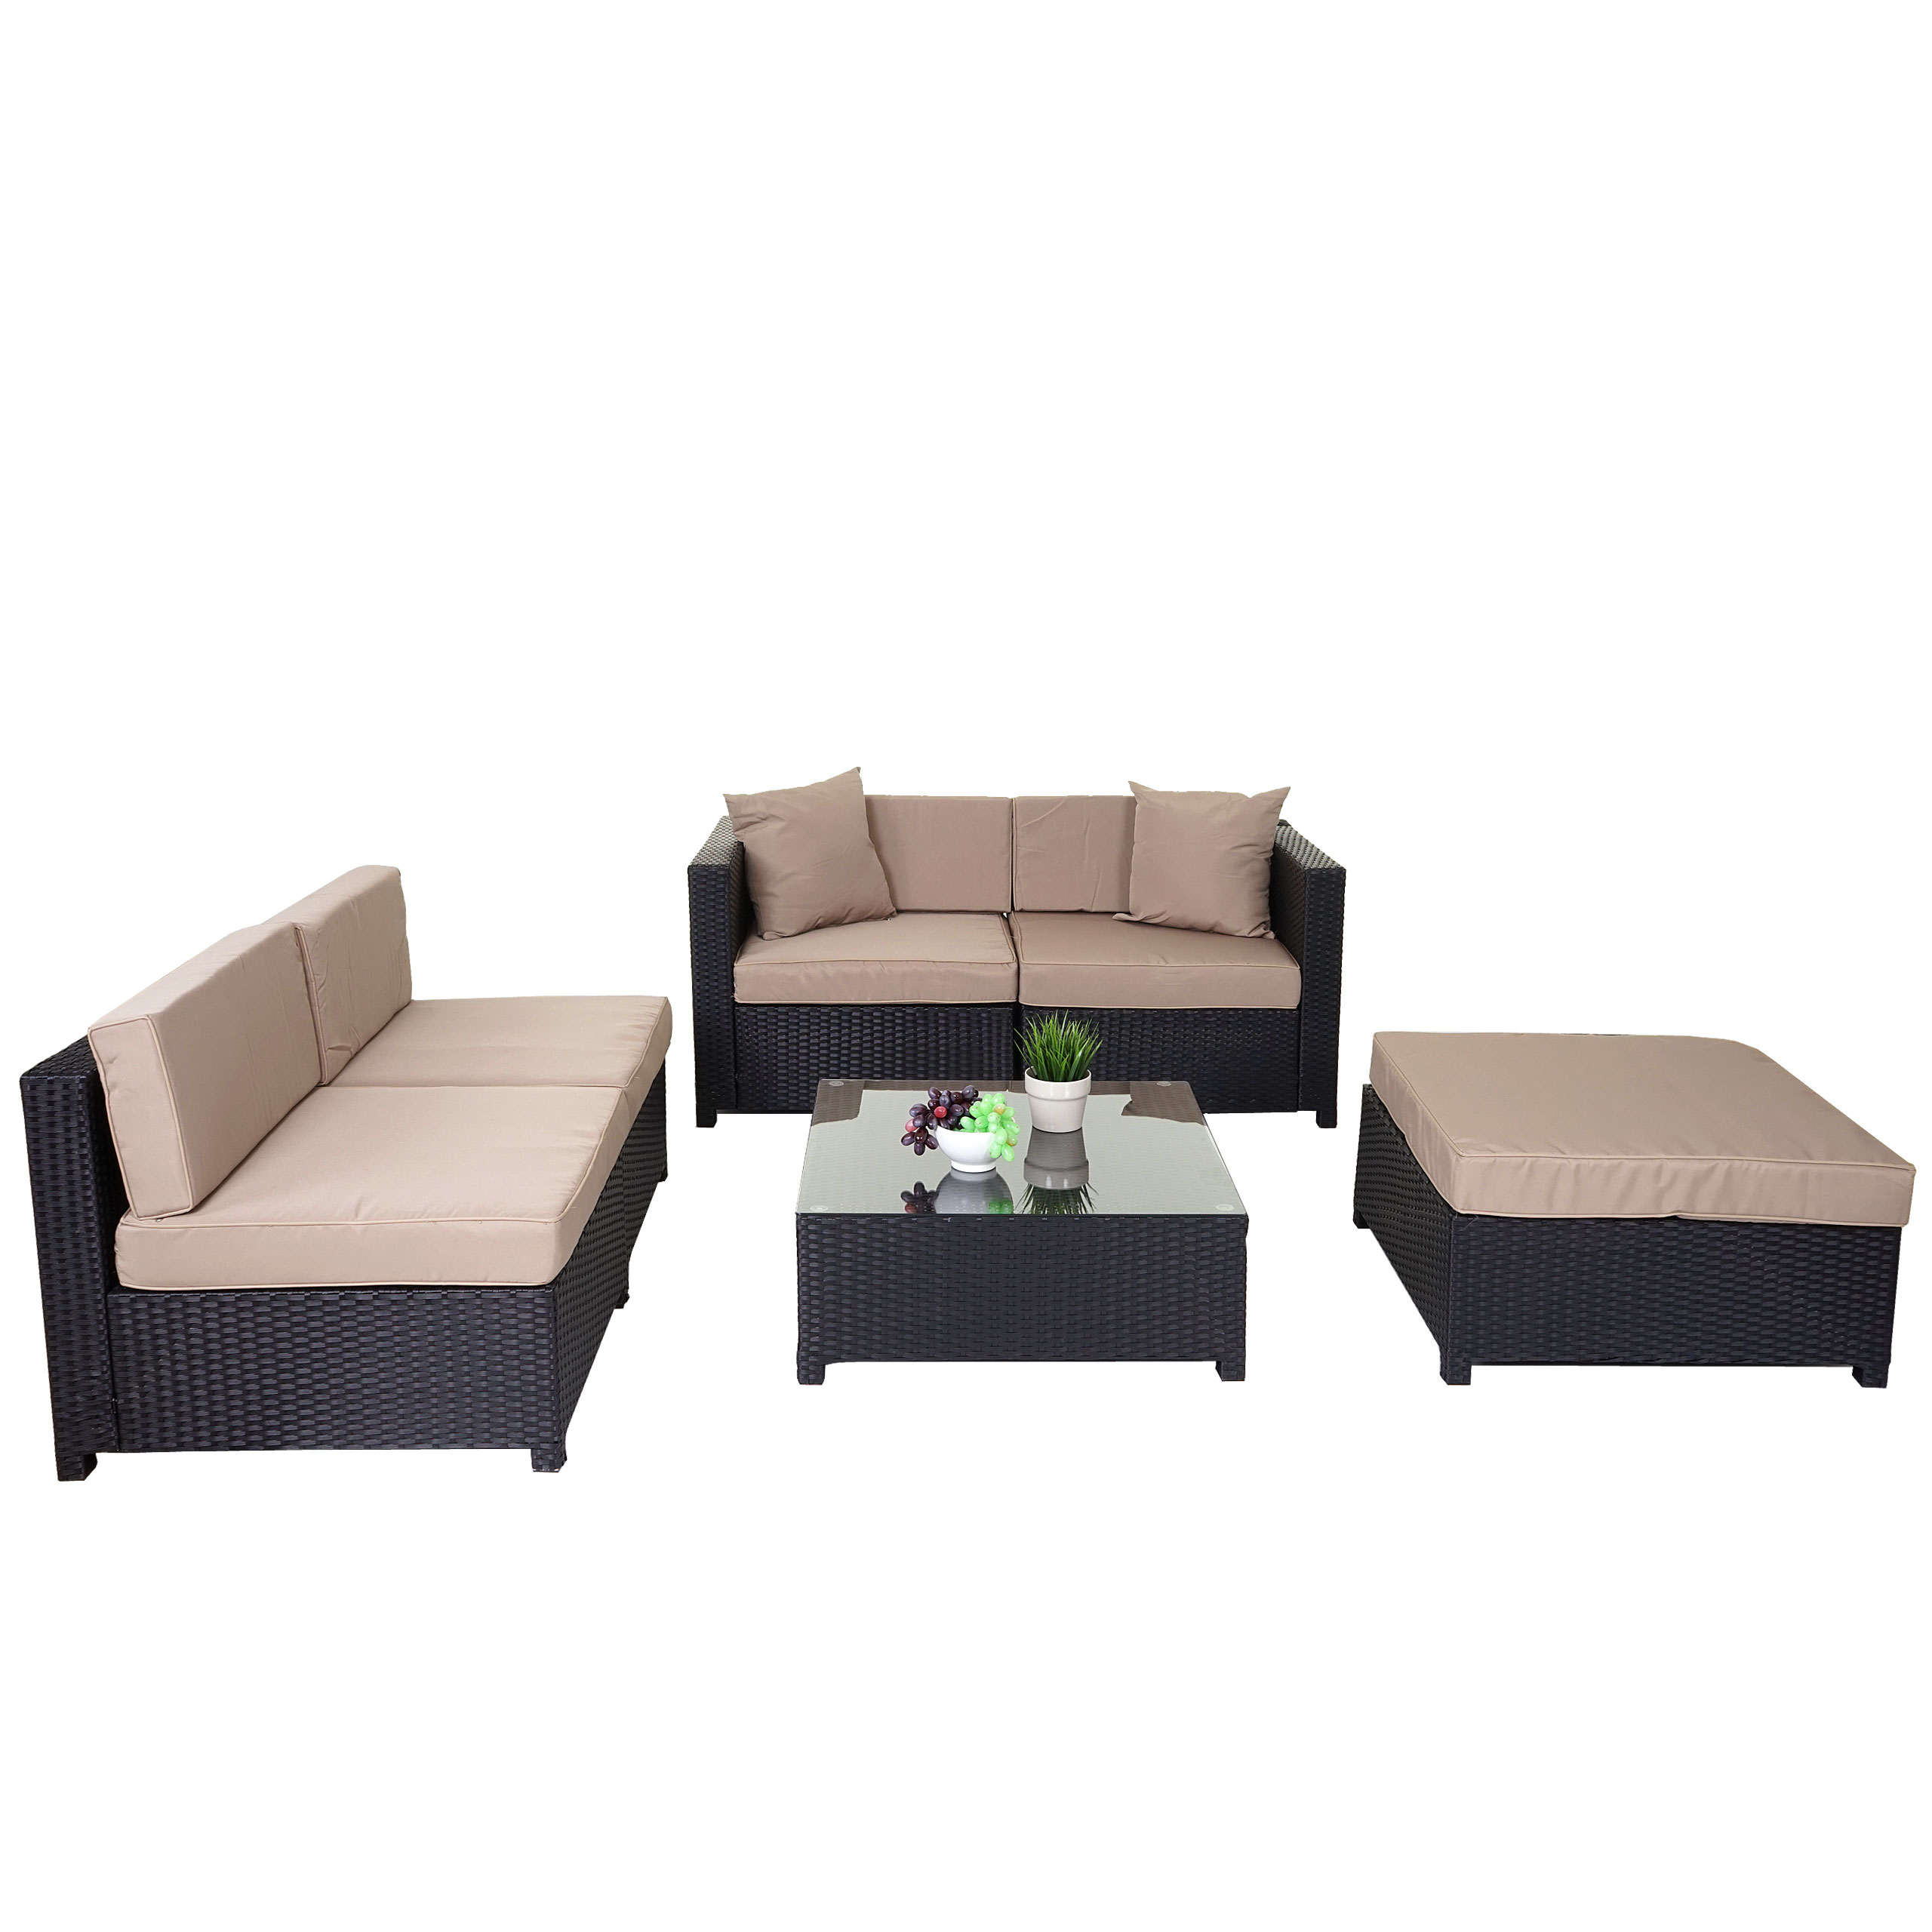 poly rattan garnitur gela sitzgruppe lounge set alu anthrazit kissen beige. Black Bedroom Furniture Sets. Home Design Ideas